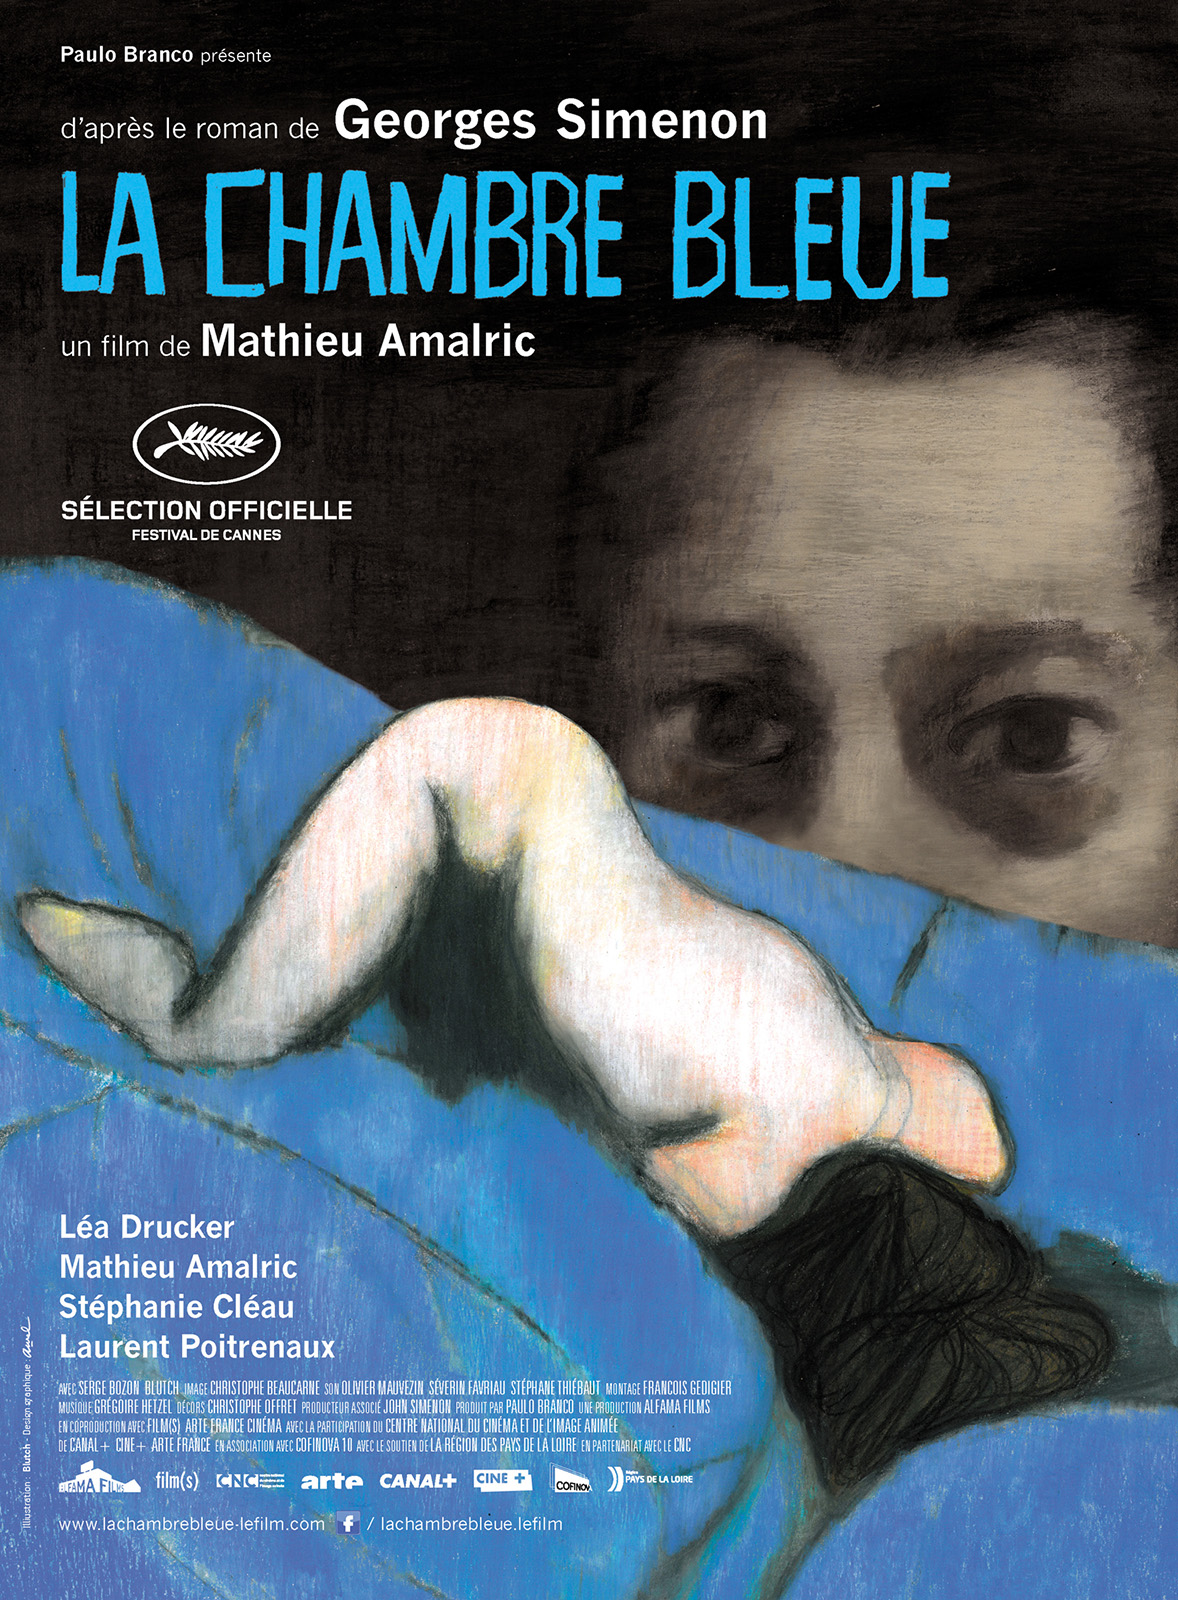 La Chambre Bleue Streaming Vf La Chambre Bleue Dvd And Blu Ray